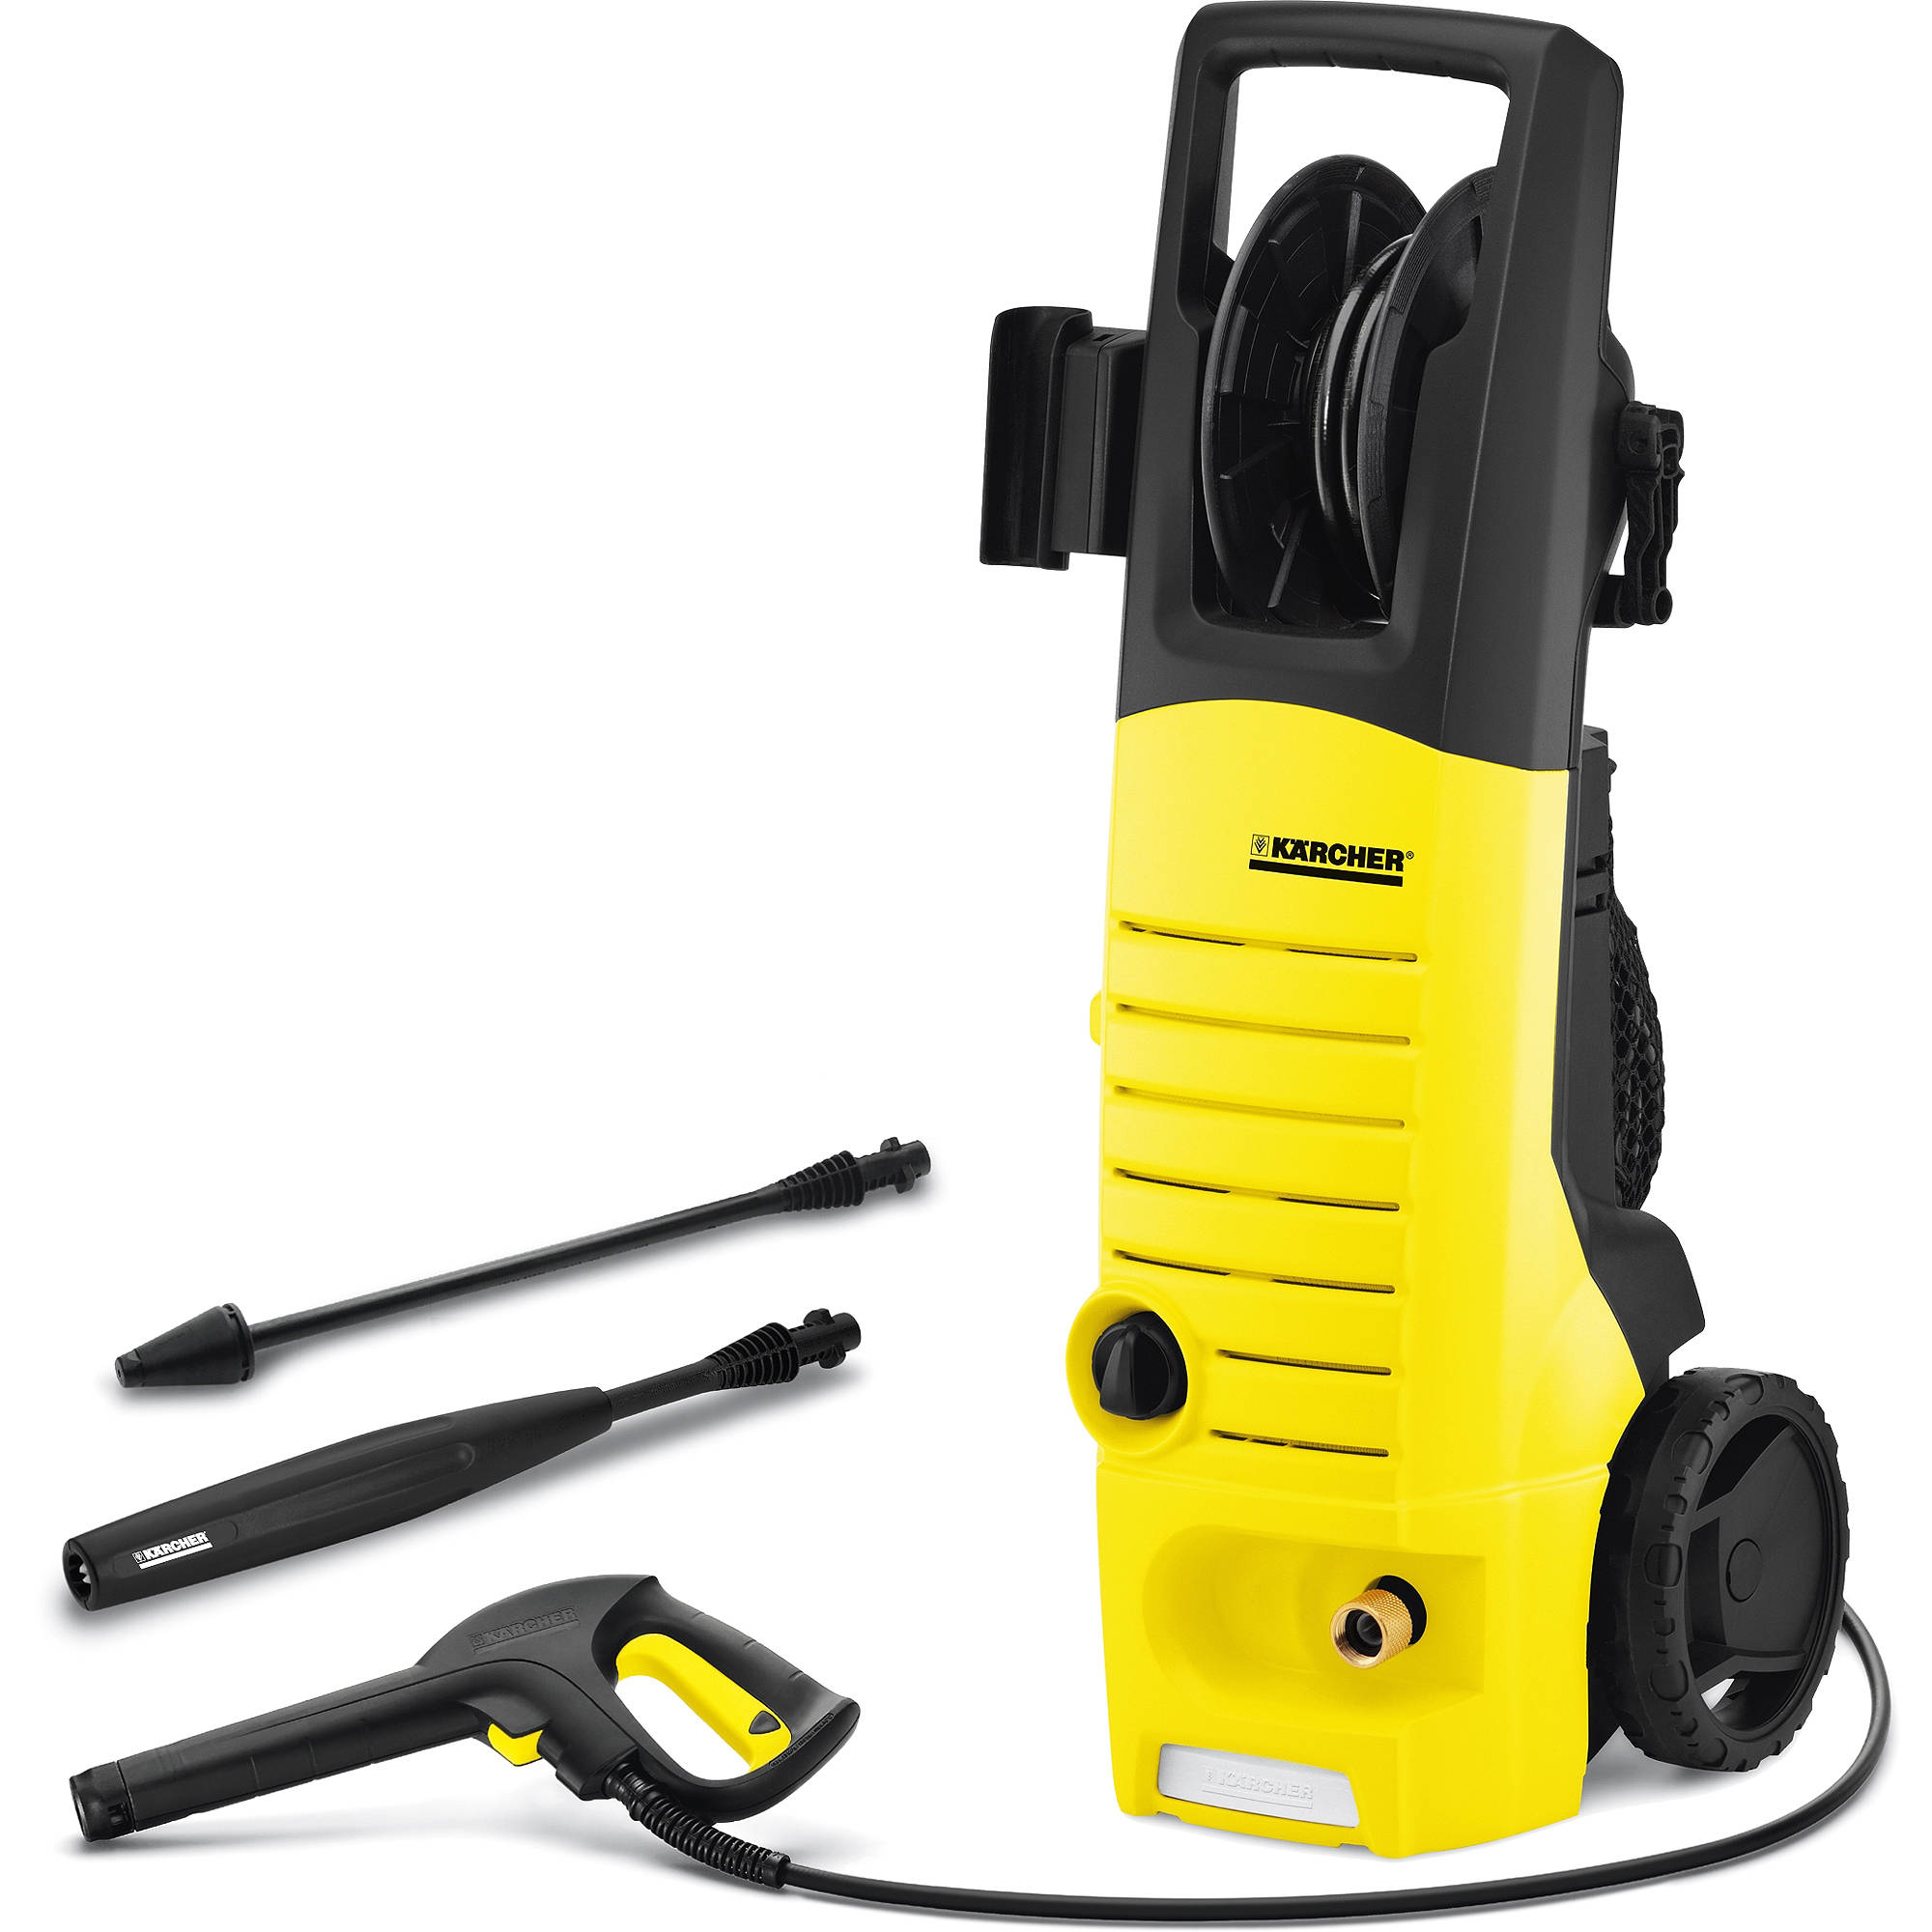 Karcher K3.690 Pressure Washer